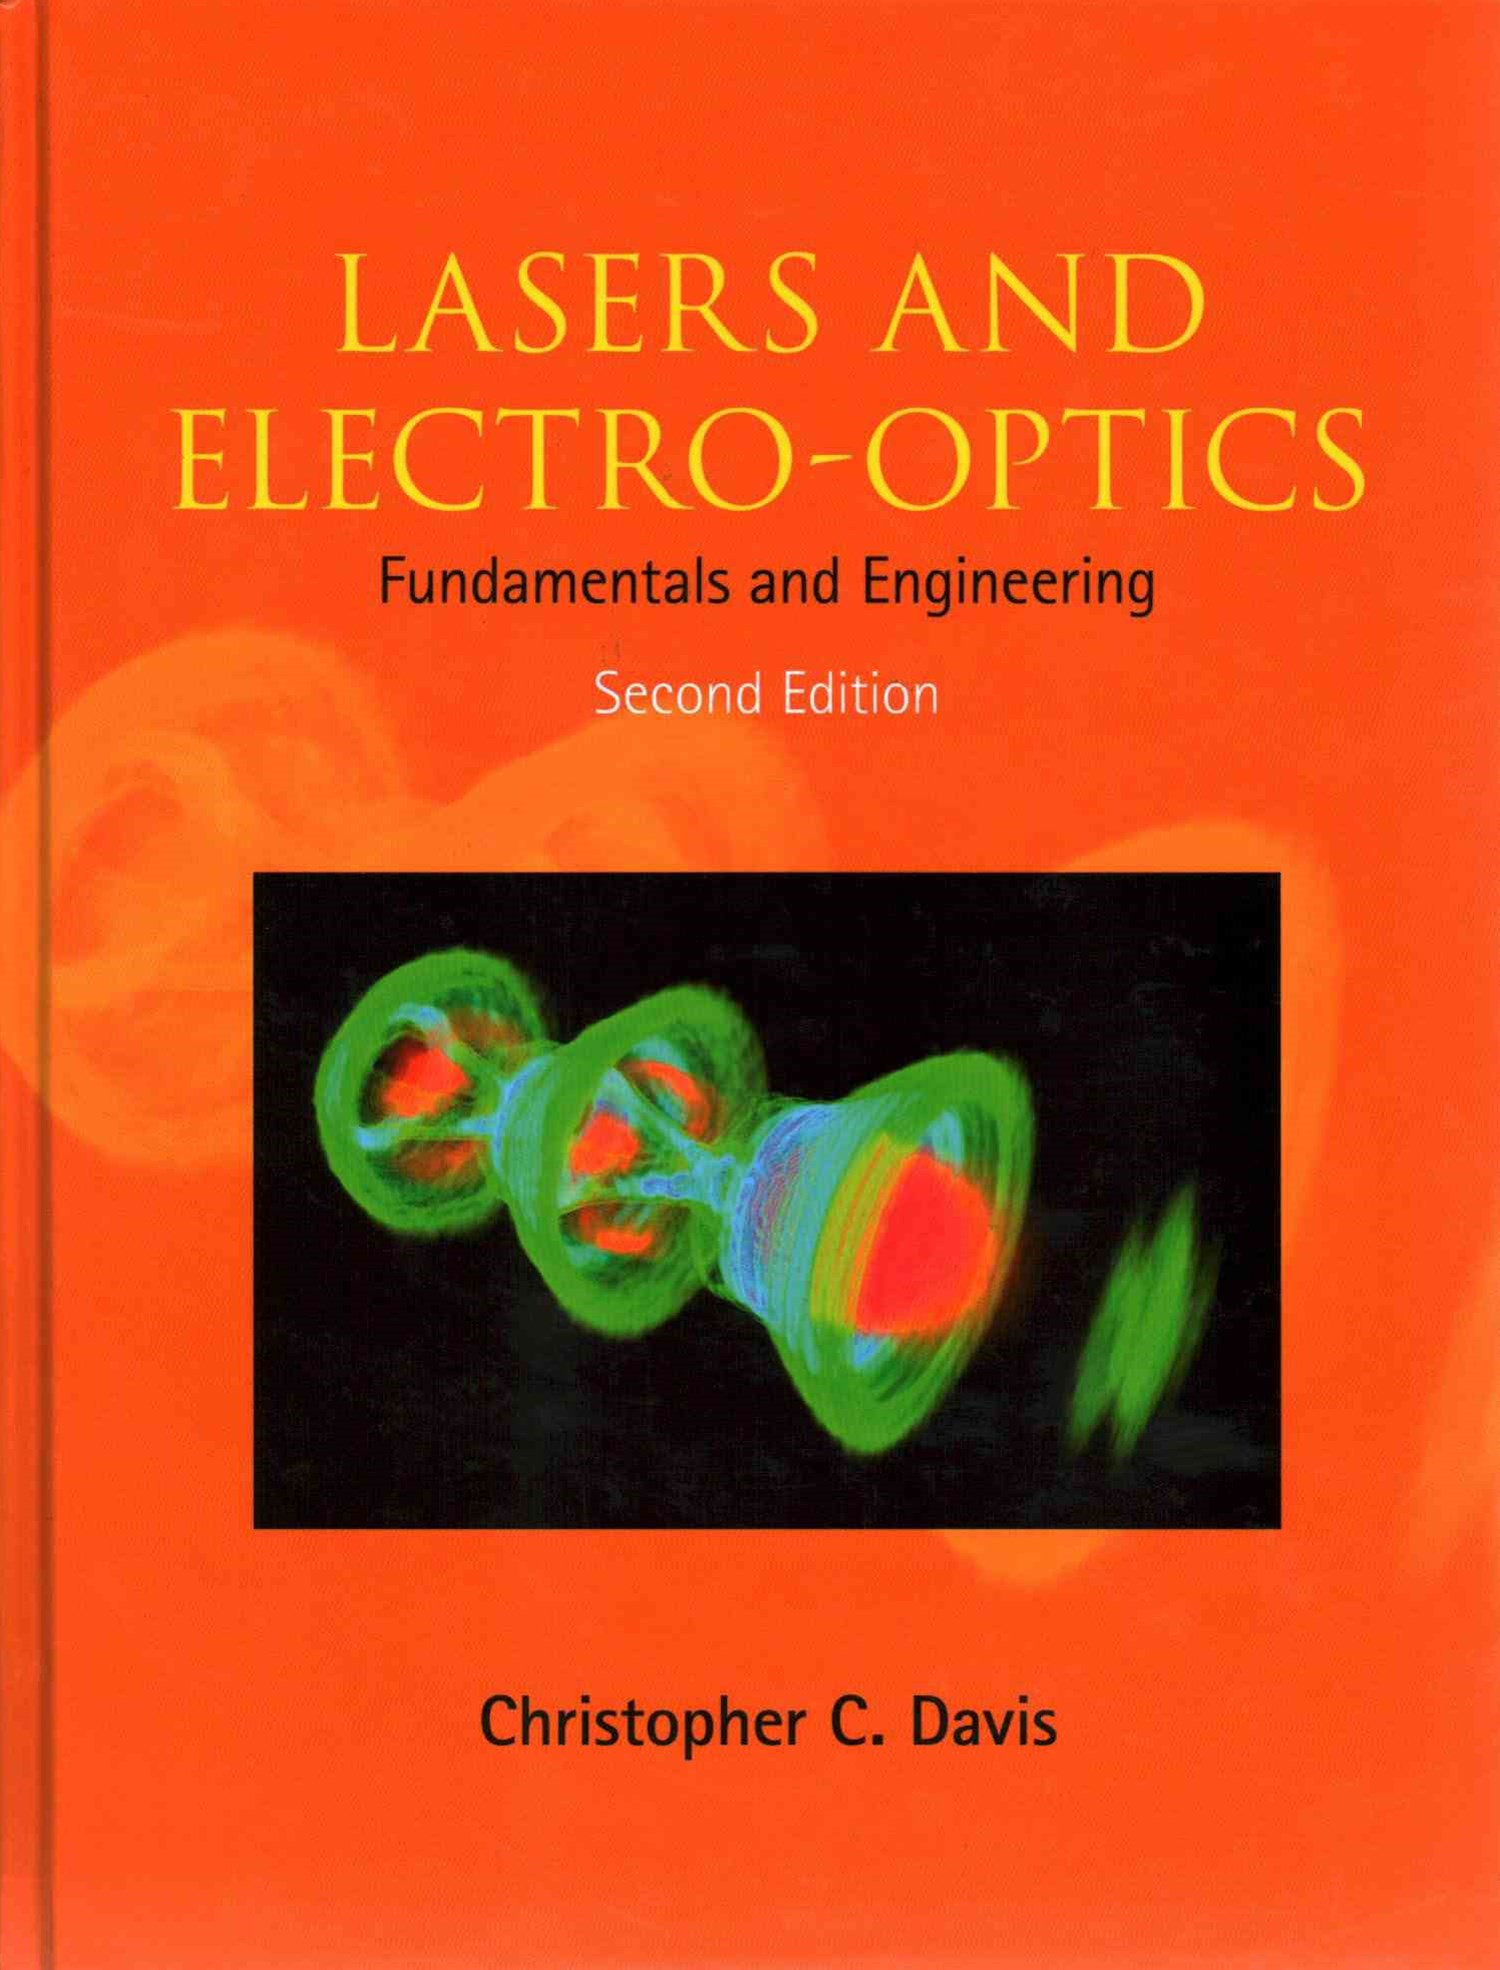 Lasers and Electro-optics